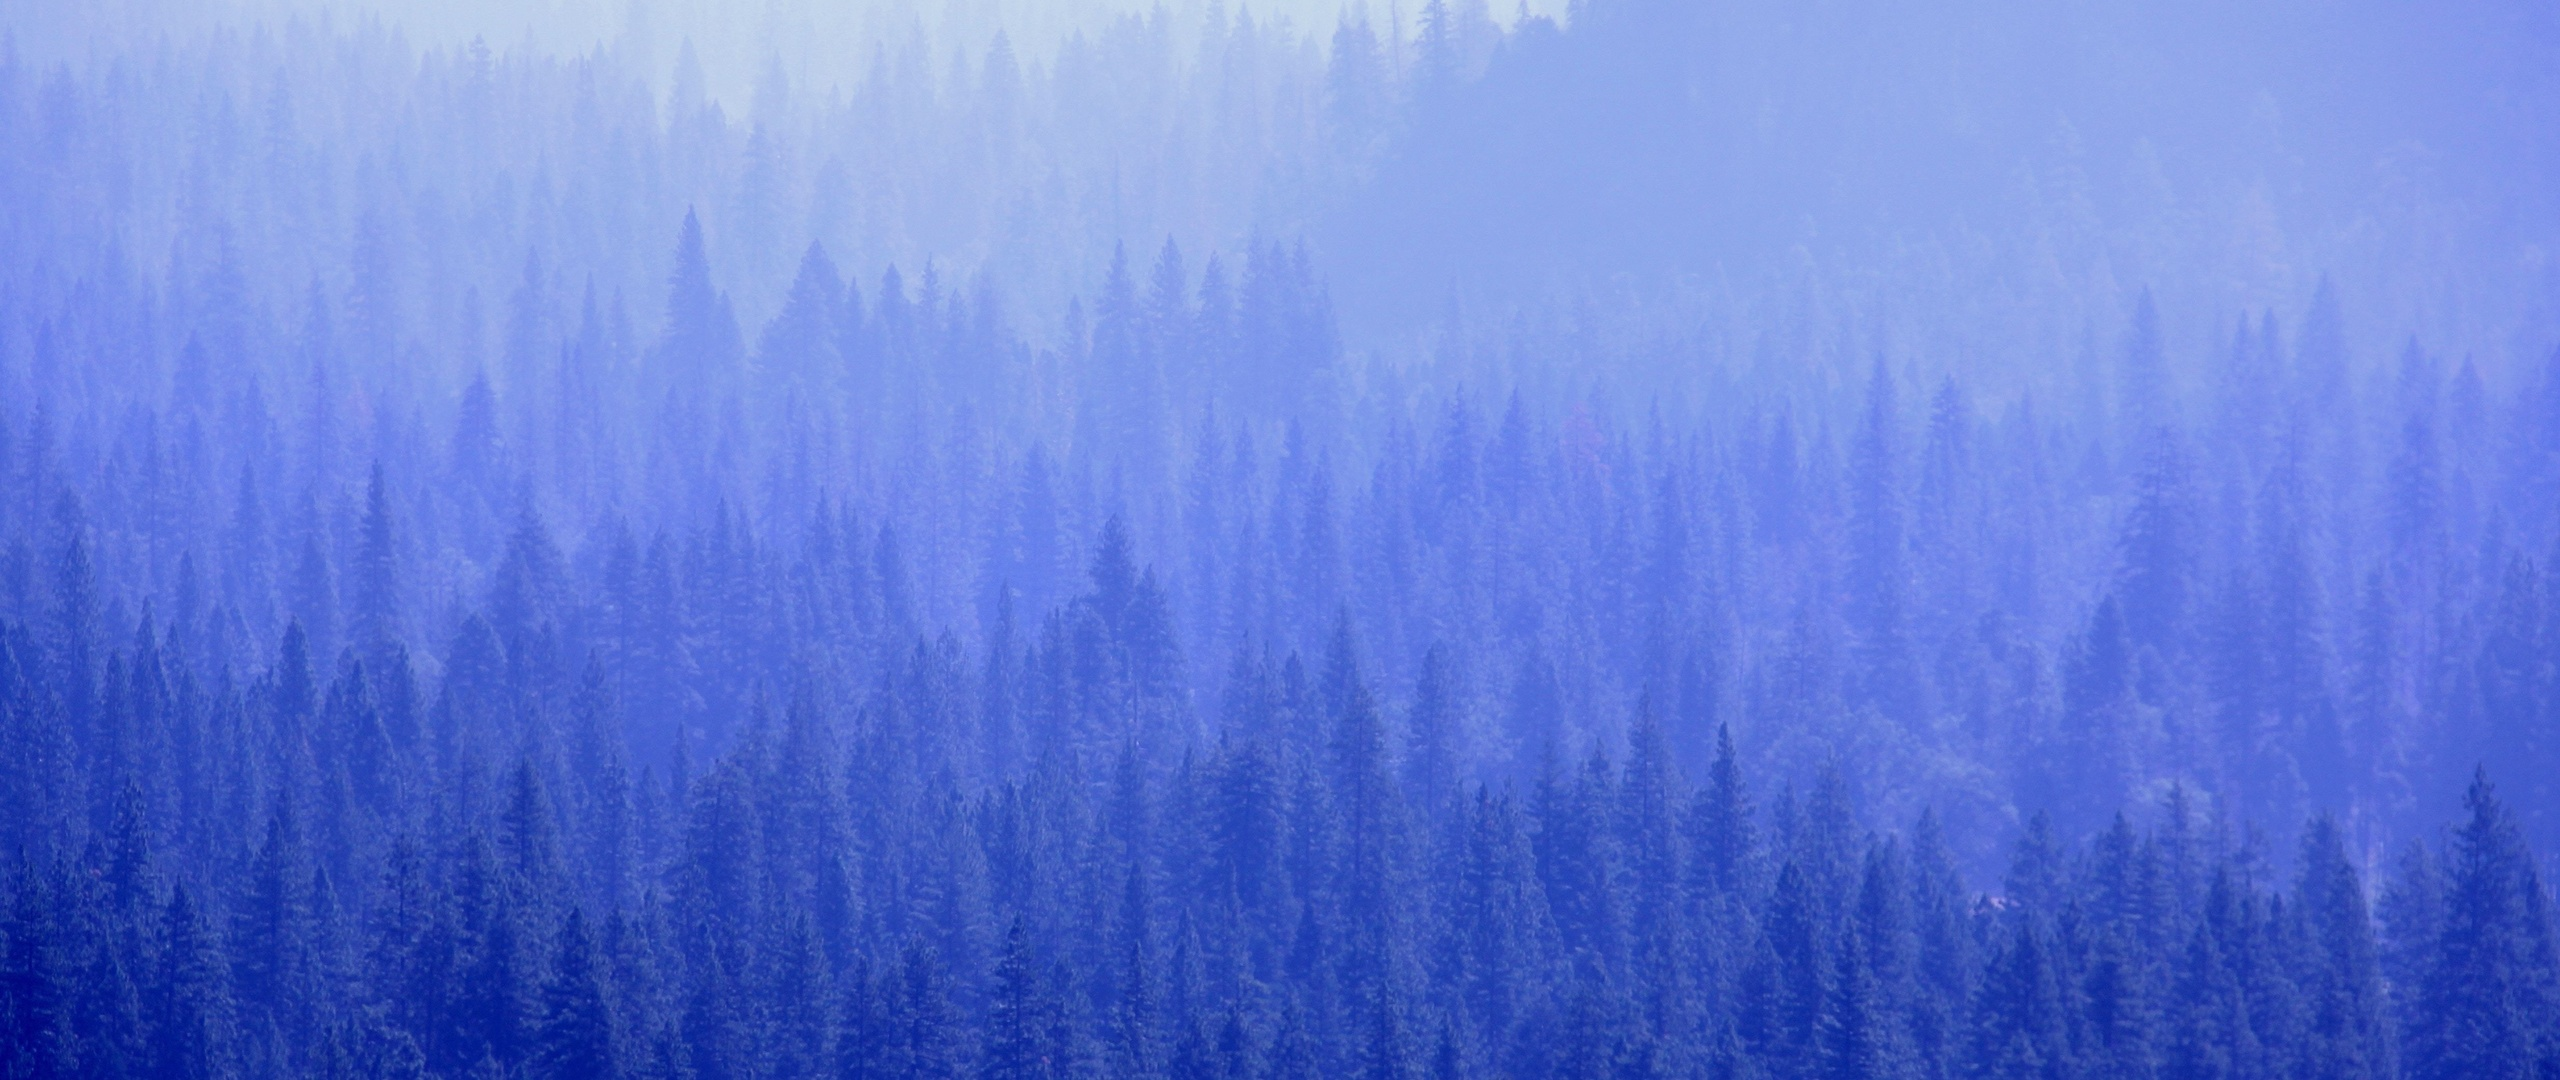 2560x1080 Forest Trees Blue Tone 5k 2560x1080 Resolution Hd 4k Wallpapers Images Backgrounds Photos And Pictures